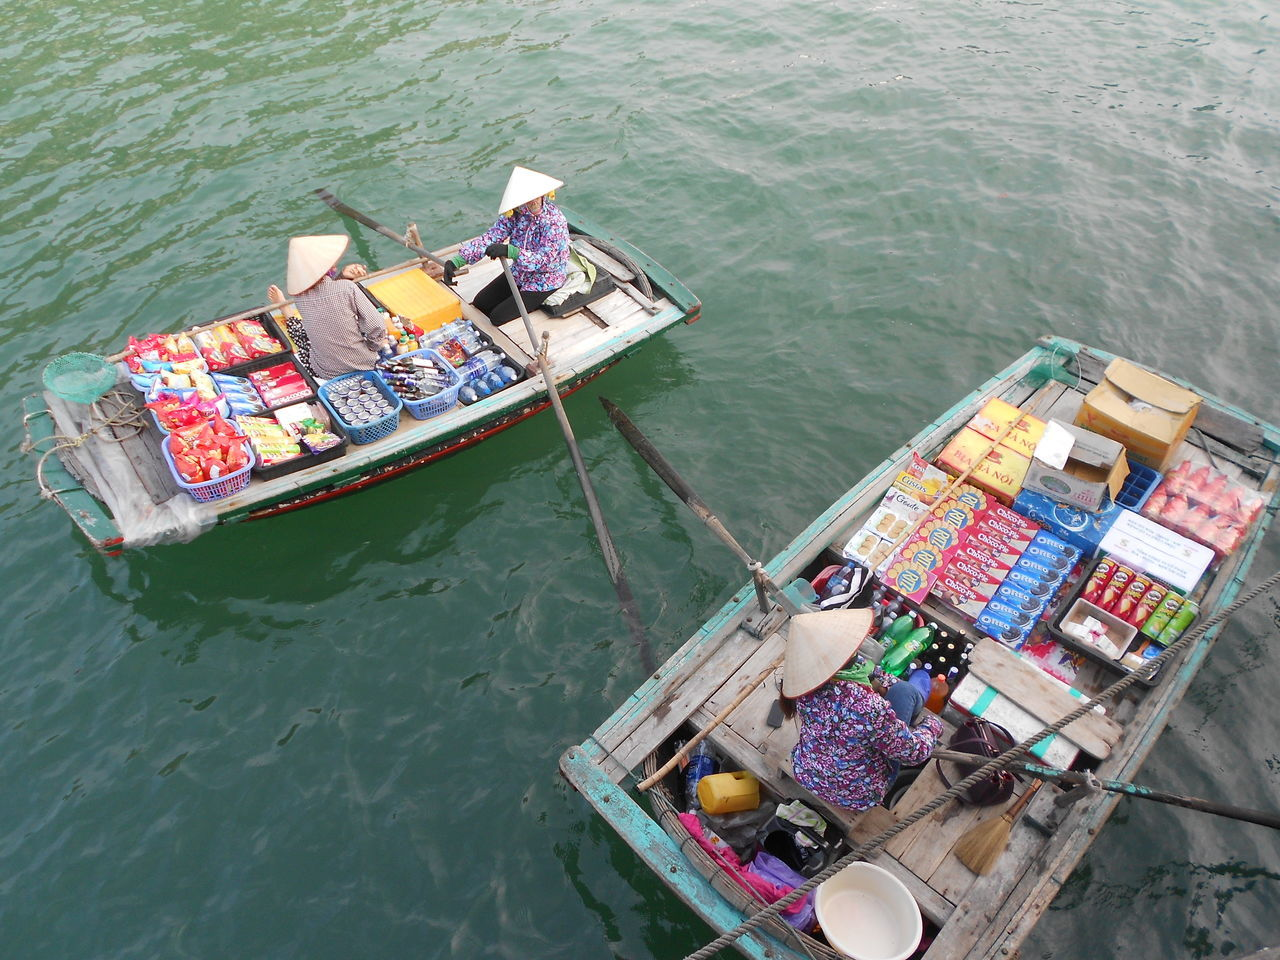 When going on a junk boat in Ha Long Bay, expect to see these woman rowing around your boat (in the middle of the ocean) selling anything from chocolates and cigarettes to warm beer. Boat Ha Long Bay High Angle View Market Nature Nautical Vessel Outdoors Real People Selling Stuff Transportation Vientamese Woman Vietnam Water Here Belongs To Me